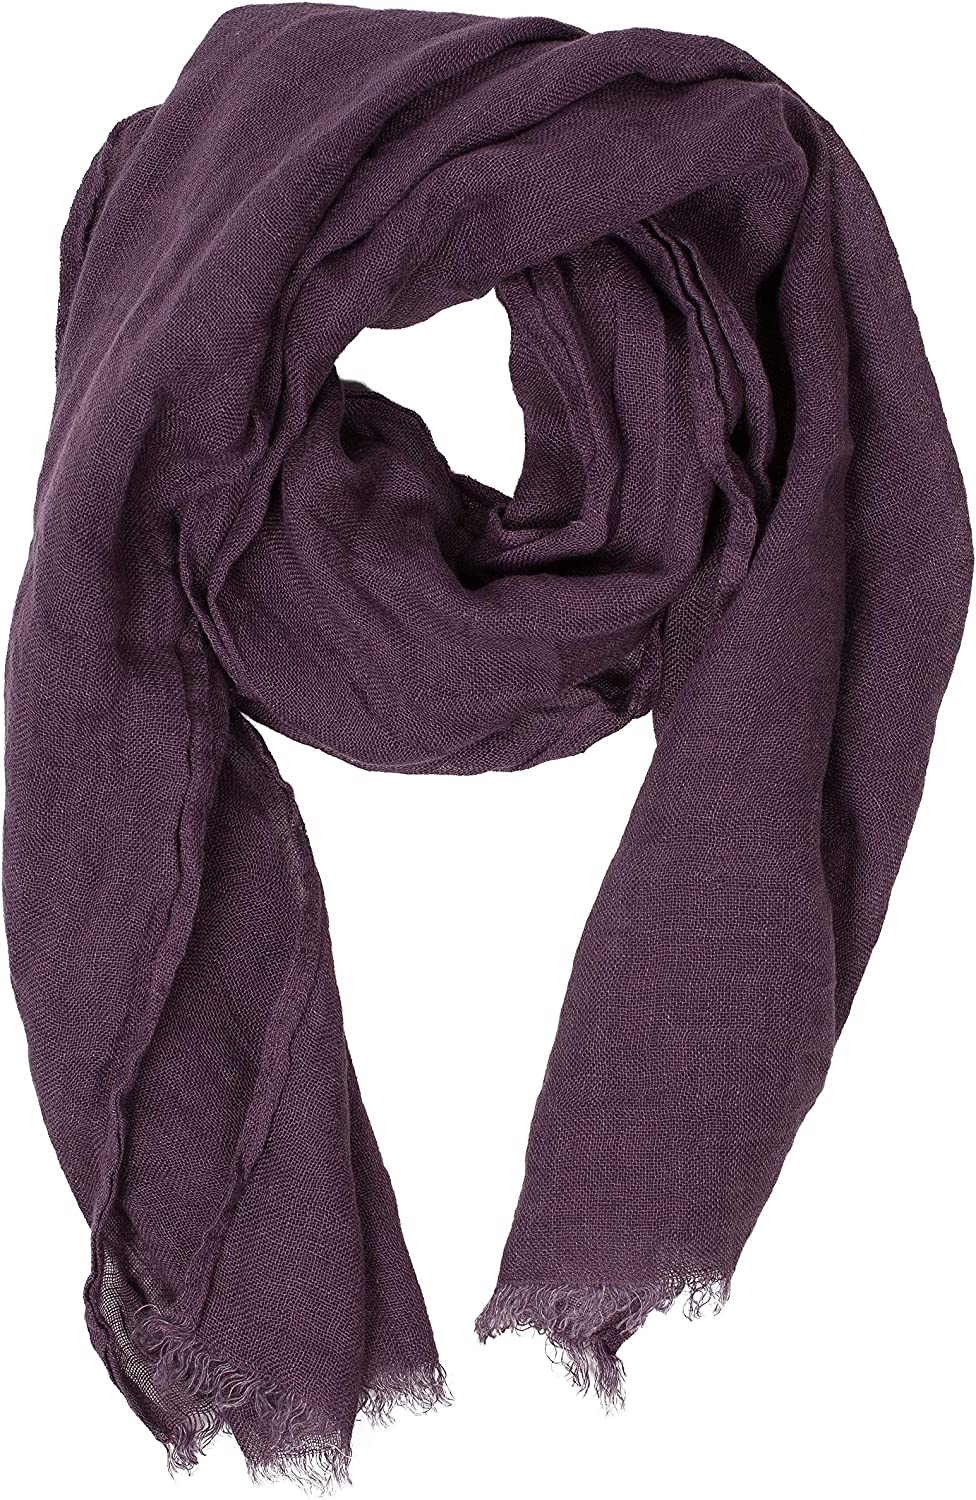 Purple Scarf   100% Linen Scarf   Scarves For Women   Mens Scarf   Linen